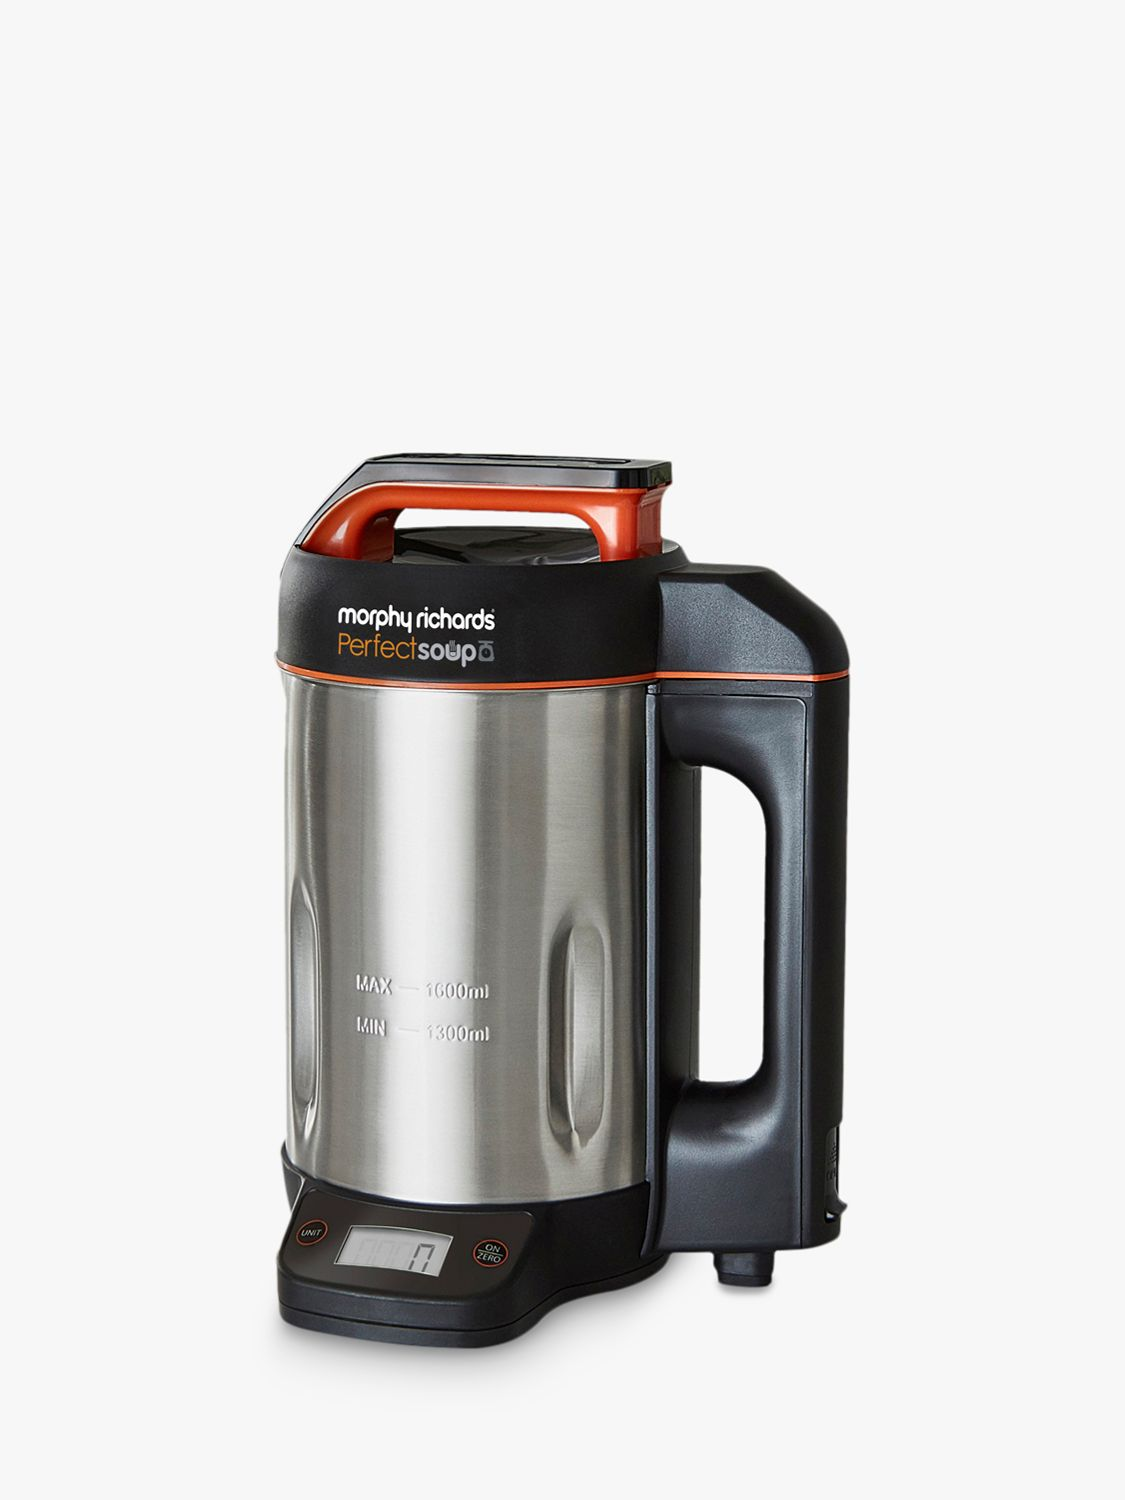 Morphy Richards Morphy Richards 501025 Perfect Soup Maker with Scales, Stainless Steel